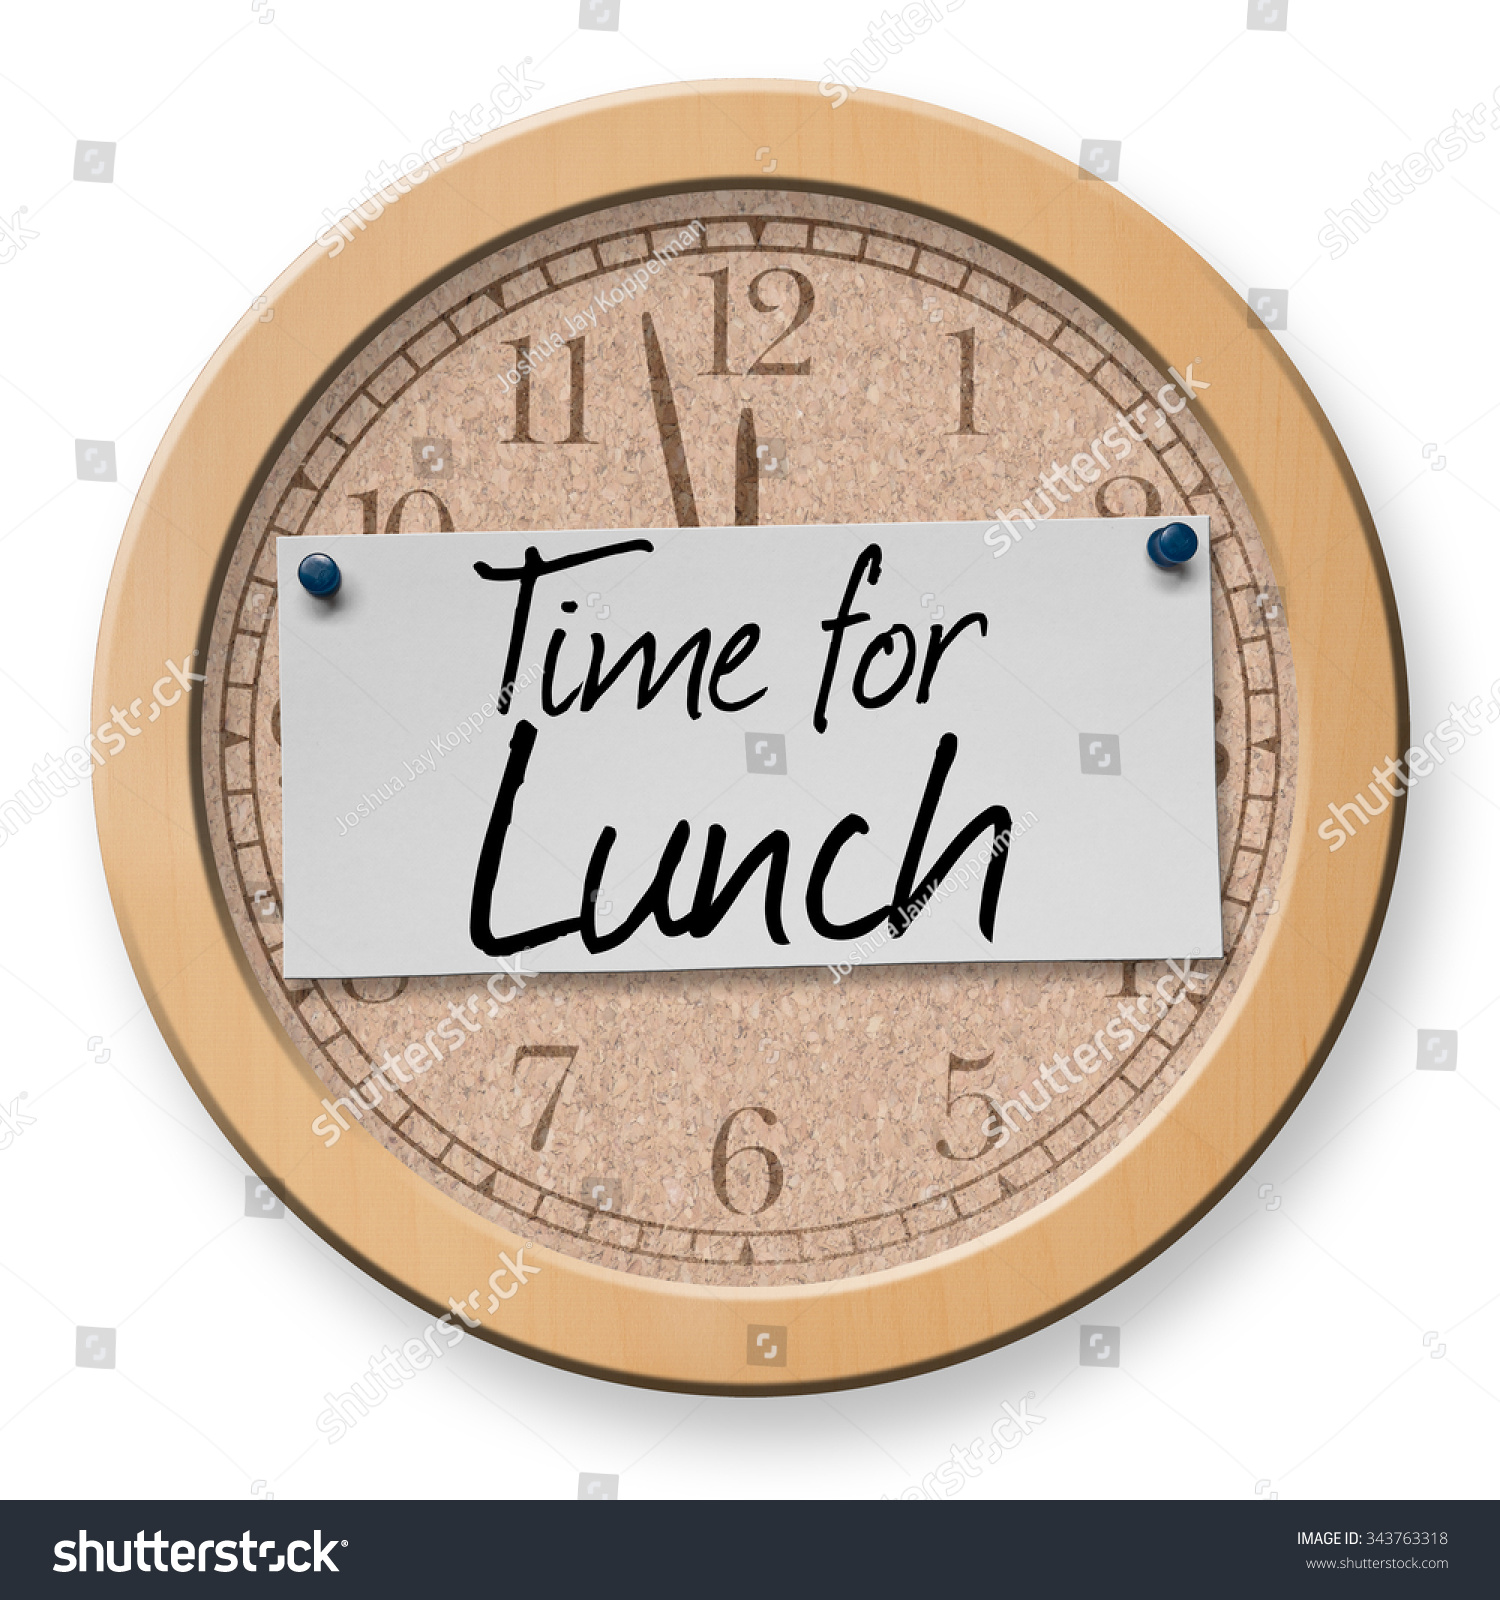 Time Lunch Text On Clock Bulletin Stock Photo Royalty Free 343763318